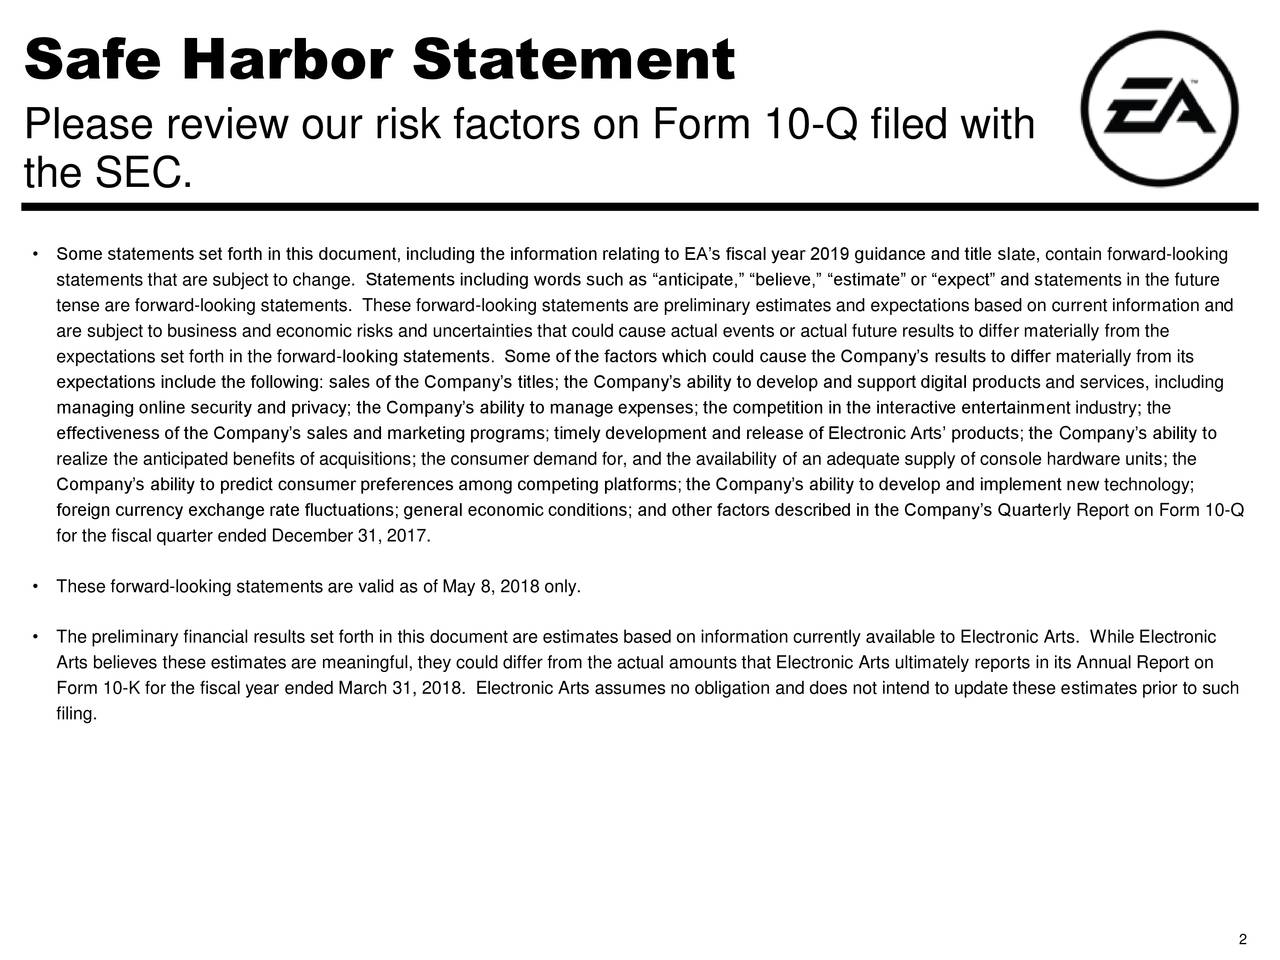 """Please review our risk factors on Form 10-Q filed with the SEC. • Some statements set forth in this document, including the information relating to EA's fiscal year 2019 guidance and title slate, contain forward-looking statements that are subject to change. Statements including words such as """"anticipate,"""" """"believe,"""" """"estimate"""" or """"expect"""" and statements in the future tense are forward-looking statements. These forward-looking statements are preliminary estimates and expectations based on current information and are subject to business and economic risks and uncertainties that could cause actual events or actual future results to differ materially from the expectations set forth in the forward-looking statements. Some of the factors which could cause the Company's results to differ materially from its expectations include the following: sales of the Company's titles; the Company's ability to develop and support digital products and services, including managing online security and privacy; the Company's ability to manage expenses; the competition in the interactive entertainment industry; the effectiveness of the Company's sales and marketing programs; timely development and release of Electronic Arts' products; the Company's ability to realize the anticipated benefits of acquisitions; the consumer demand for, and the availability of an adequate supply of console hardware units; the Company's ability to predict consumer preferences among competing platforms; the Company's ability to develop and implement new technology; foreign currency exchange rate fluctuations; general economic conditions; and other factors described in the Company's Quarterly Report on Form 10-Q for the fiscal quarter ended December 31, 2017. • These forward-looking statements are valid as of May 8, 2018 only. • The preliminary financial results set forth in this document are estimates based on information currently available to Electronic Arts. While Electronic Arts believes these estimates are """